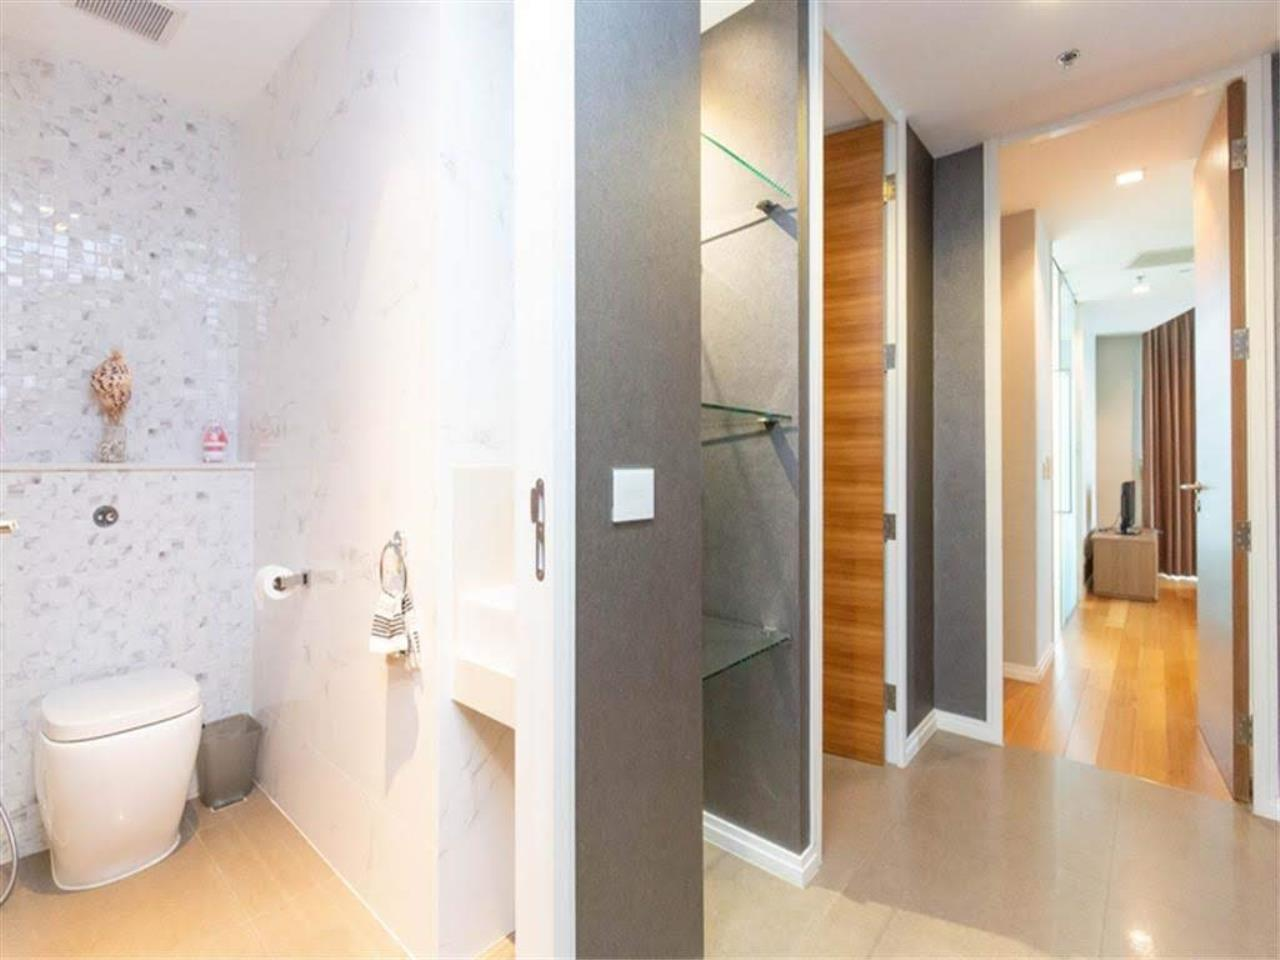 Bestbkkcondos Agency's The River - 233,8 sqm - For Sale : 52 000 000 THB - 3 Bedrooms 27